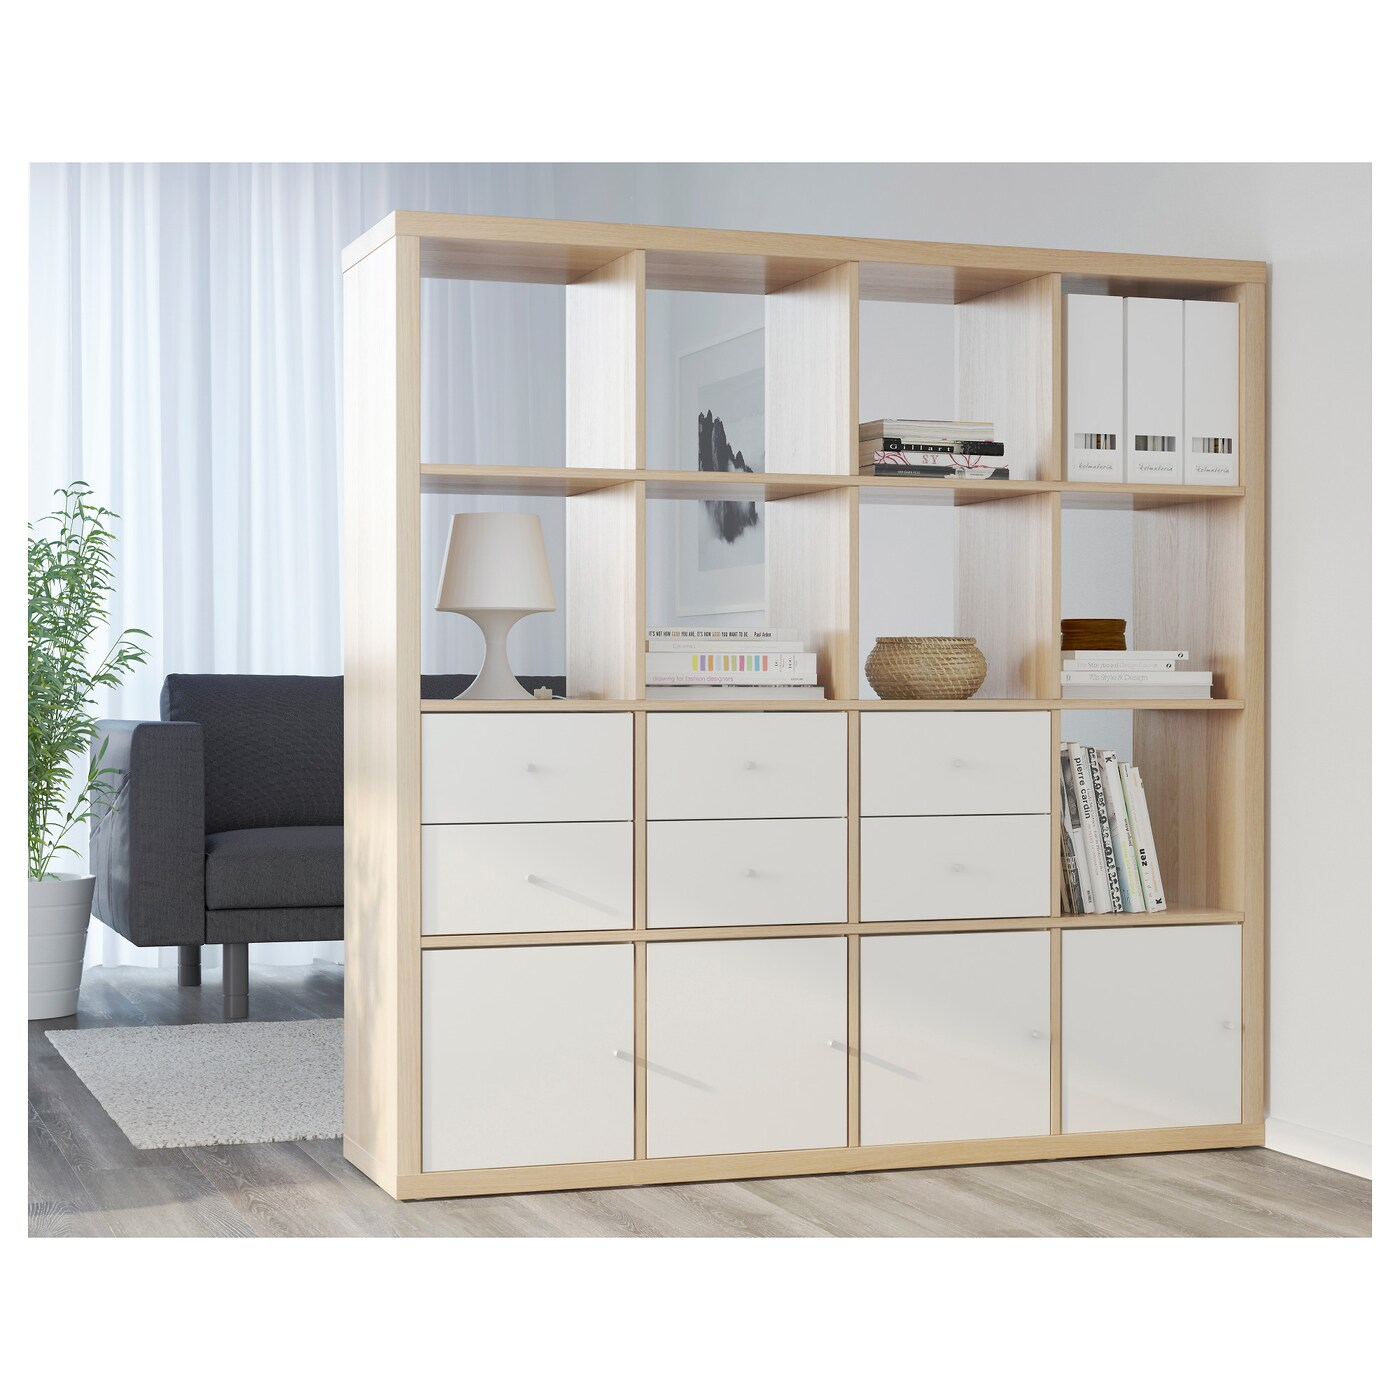 Ikea Kallax Weiß Kallax Shelving Unit White Stained Oak Effect